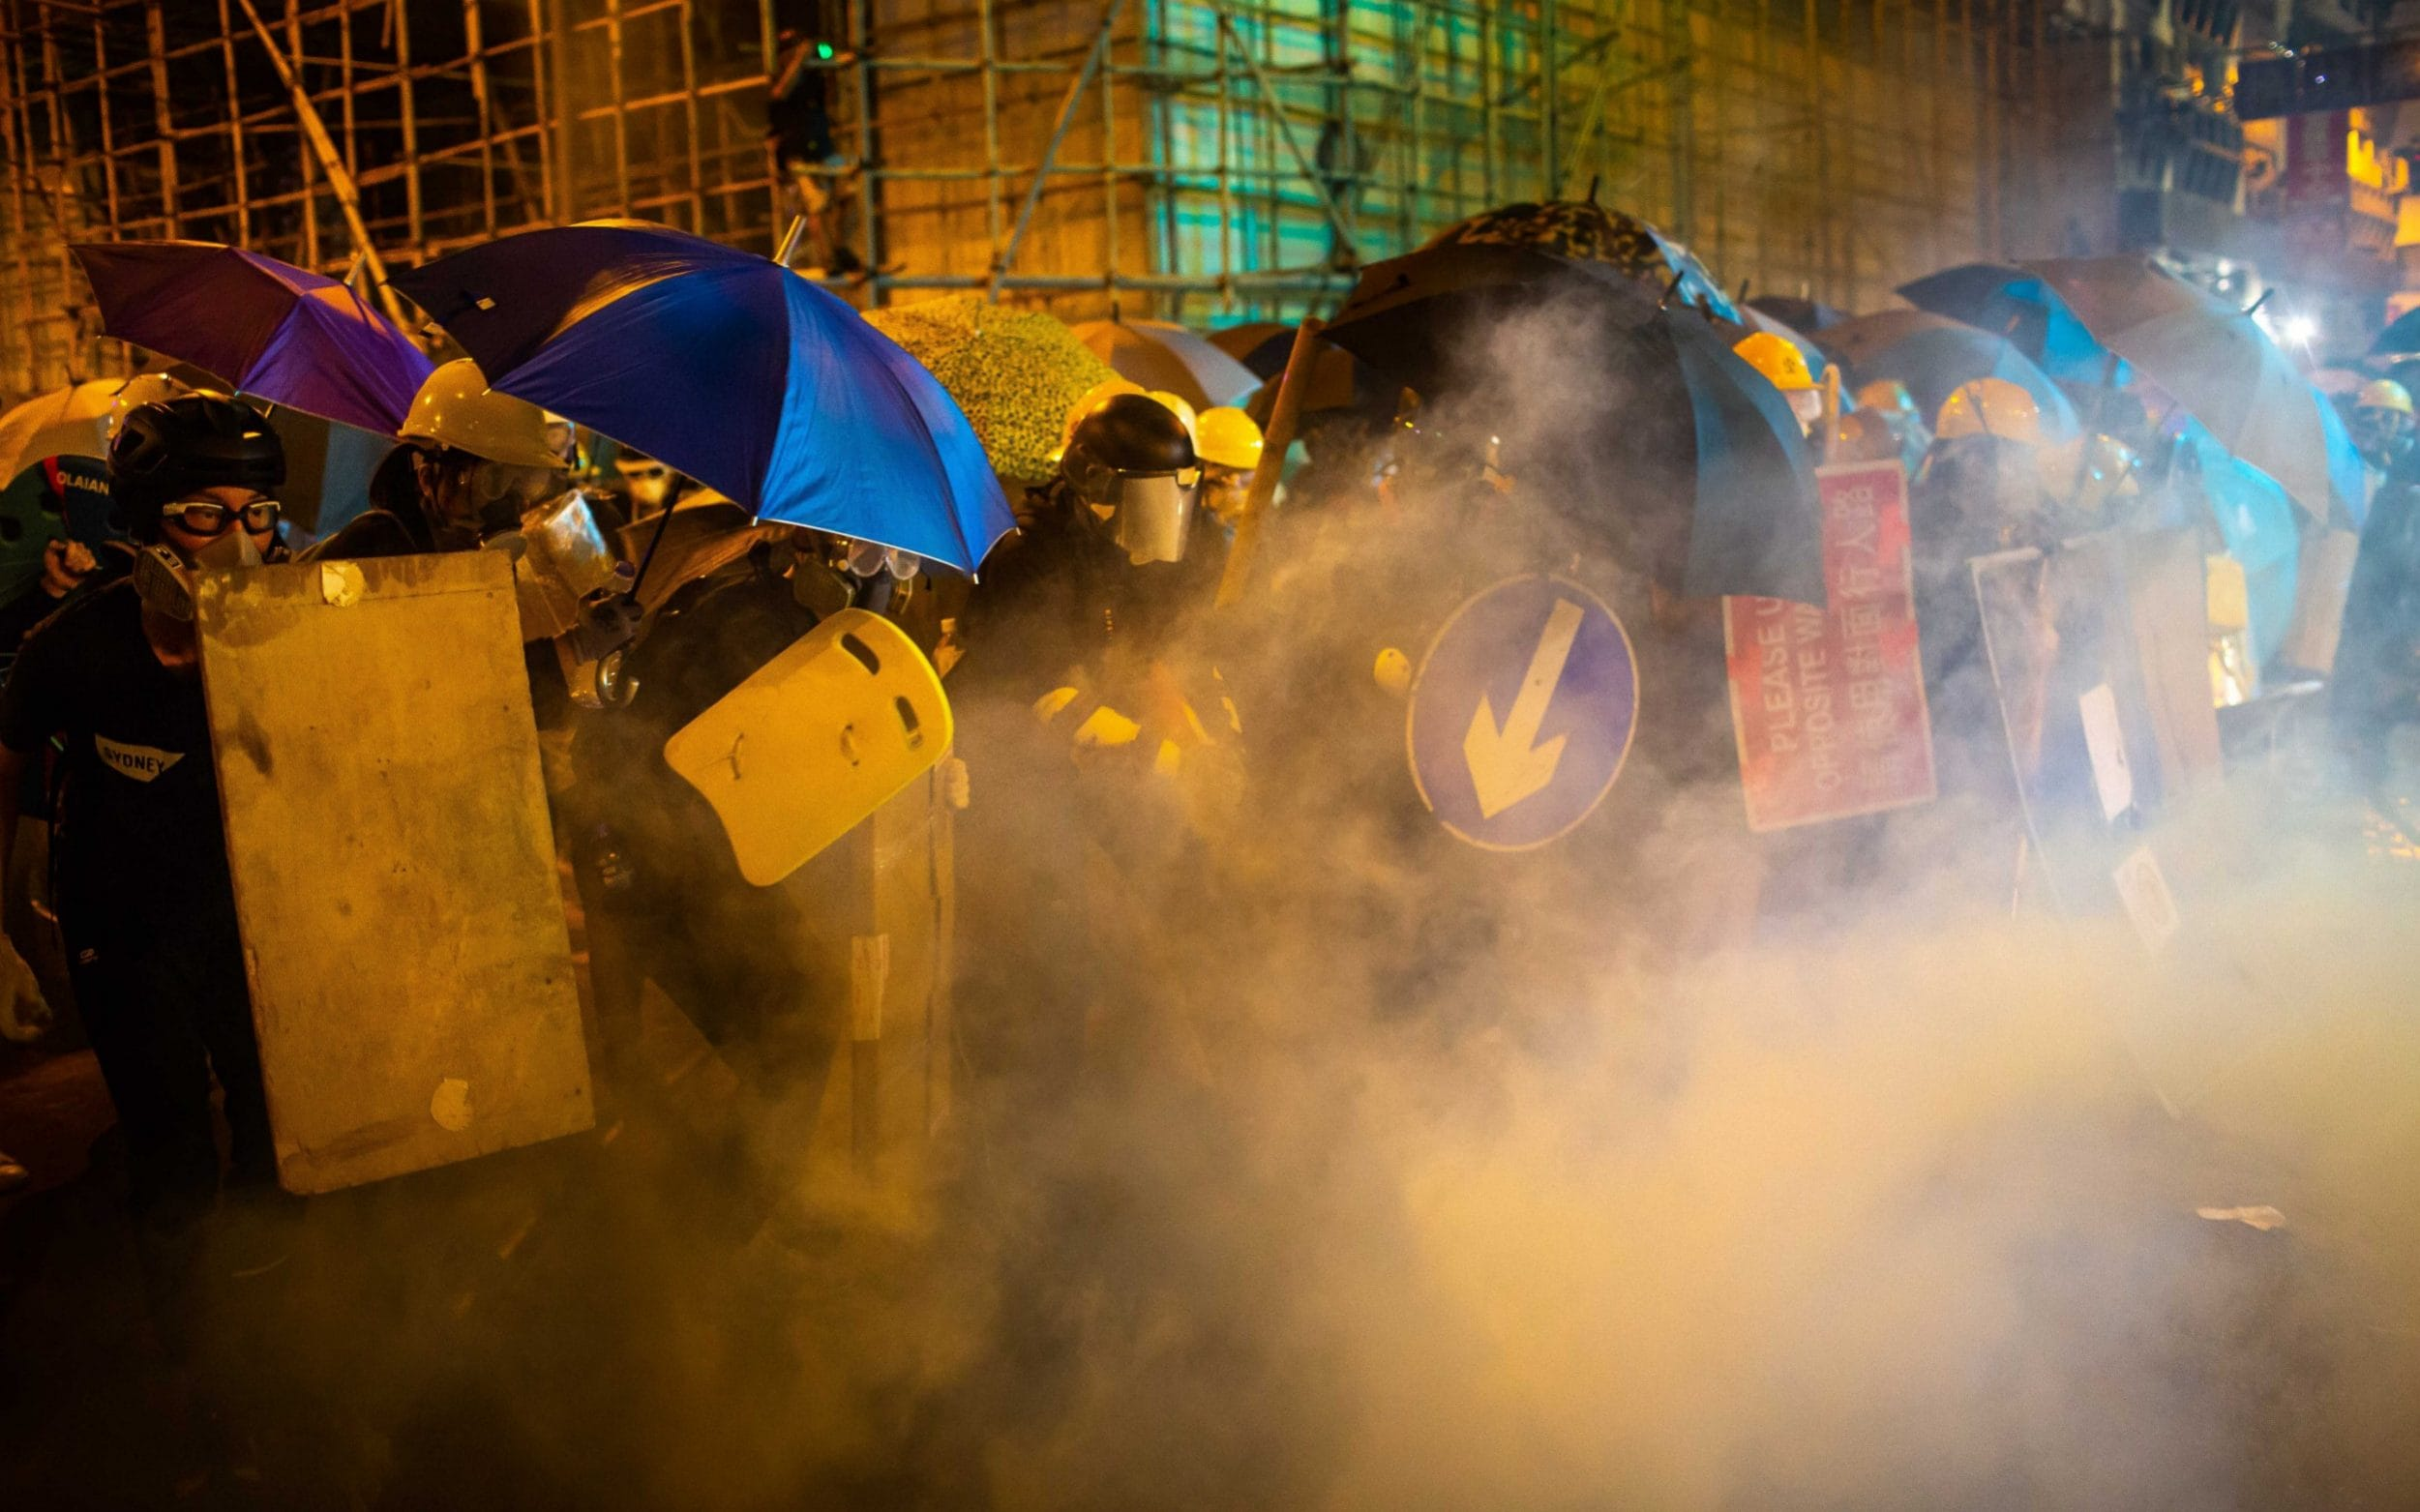 Hong Kong plunges into pandemonium for second day in a row as protests continue